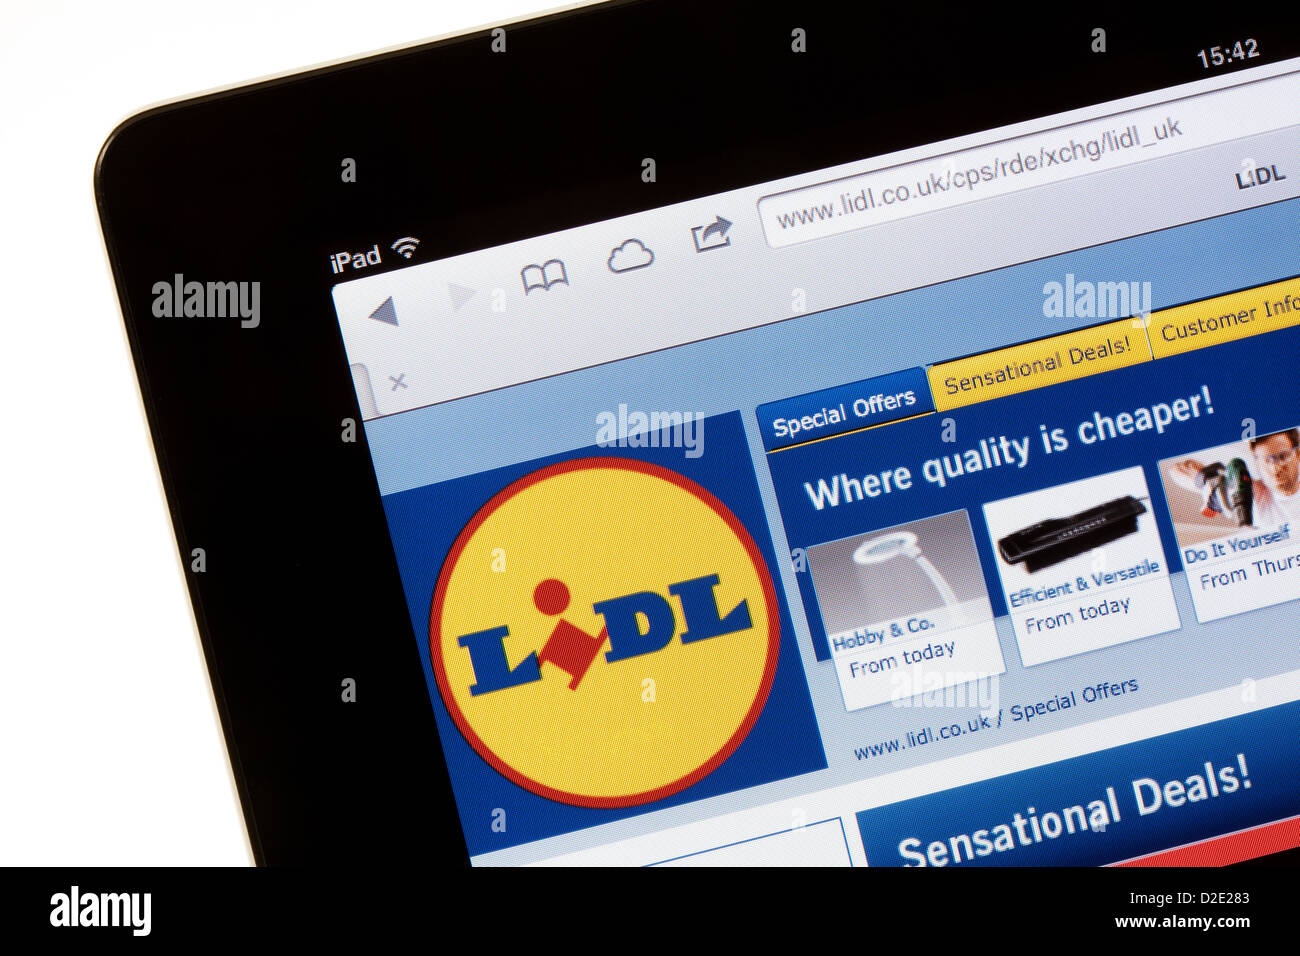 Lidl supermarket website for shopping on the internet; on an iPad, UK - Stock Image